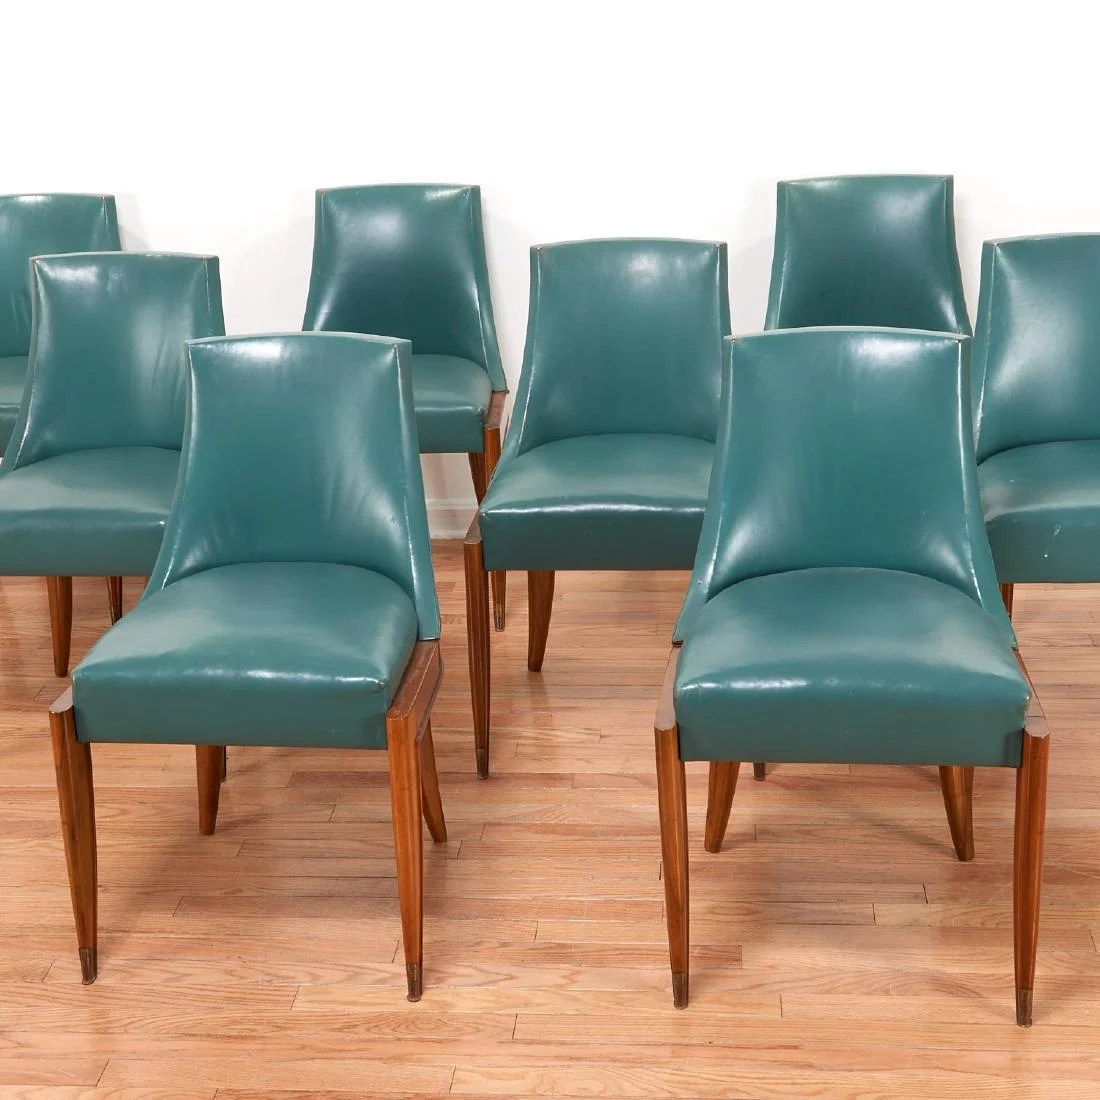 Art Deco Dining Chairs Set 10 Maurice Jallot Art Deco Dining Chairs On Liveauctioneers